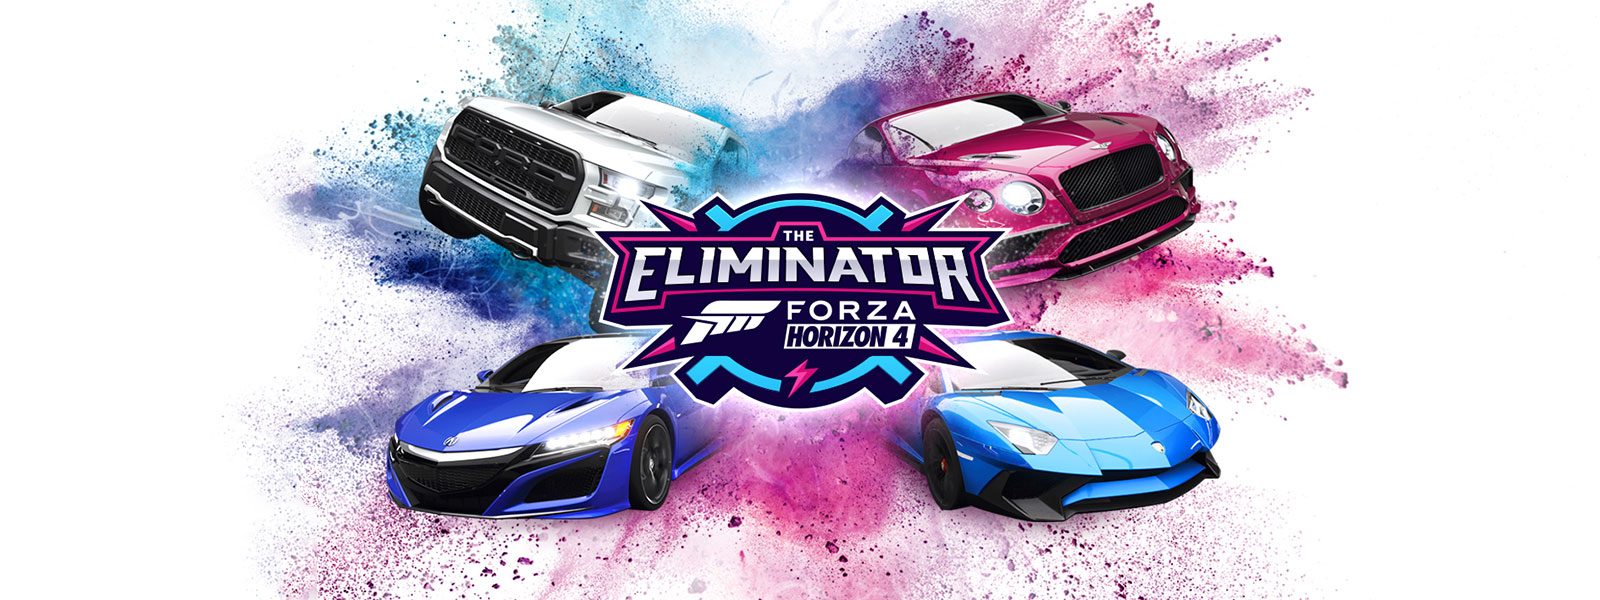 The Eliminator, Forza Horizon 4 logo, four cars with blue and pink powder around them